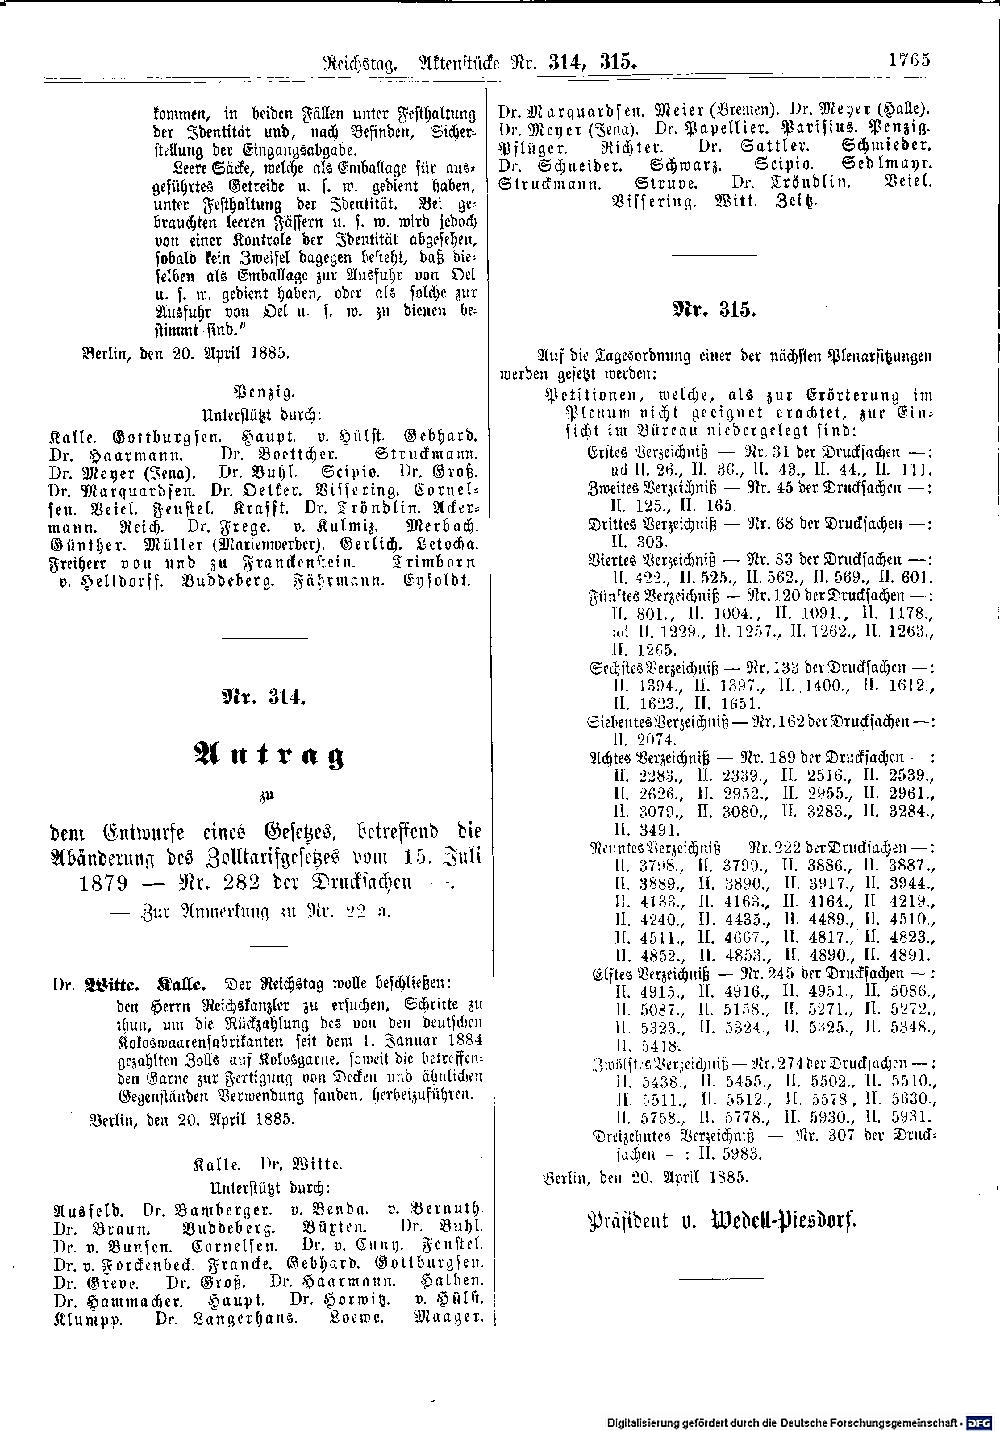 Scan of page 1765